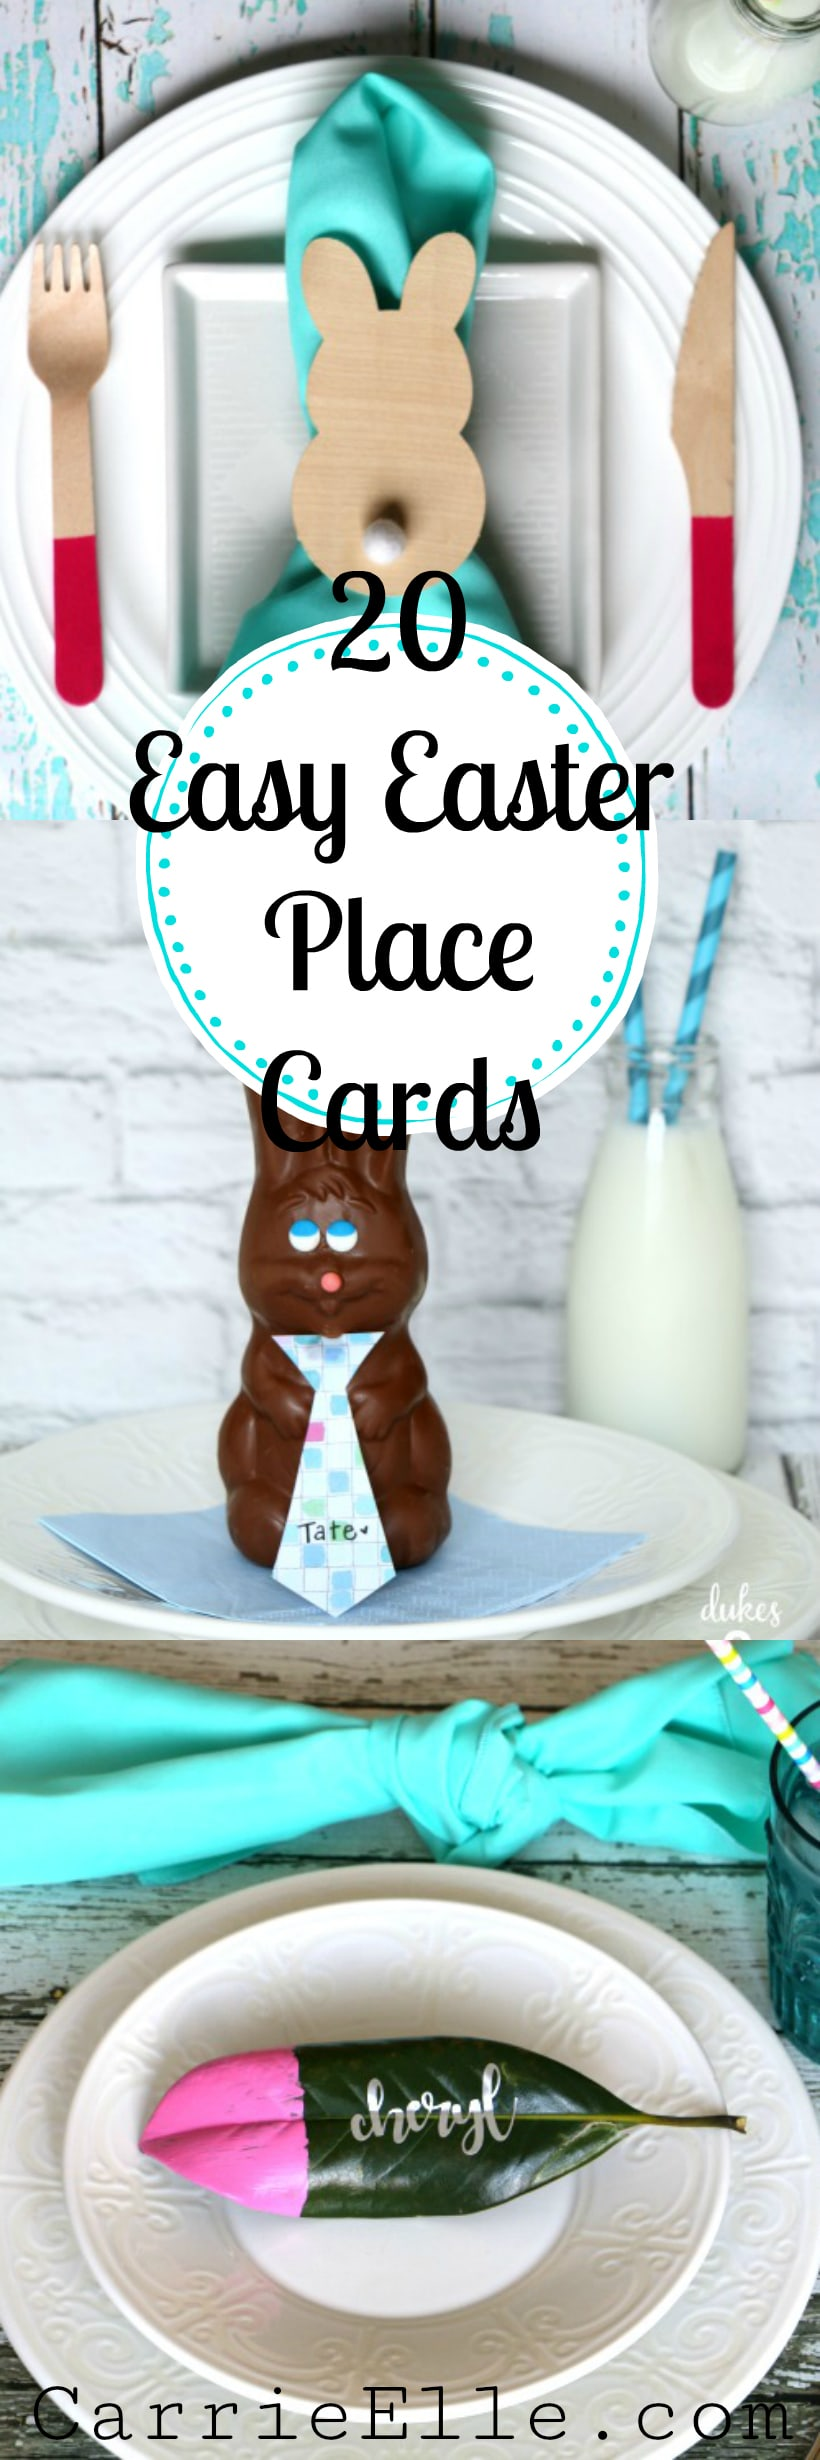 Easy Easter Place Card Pin